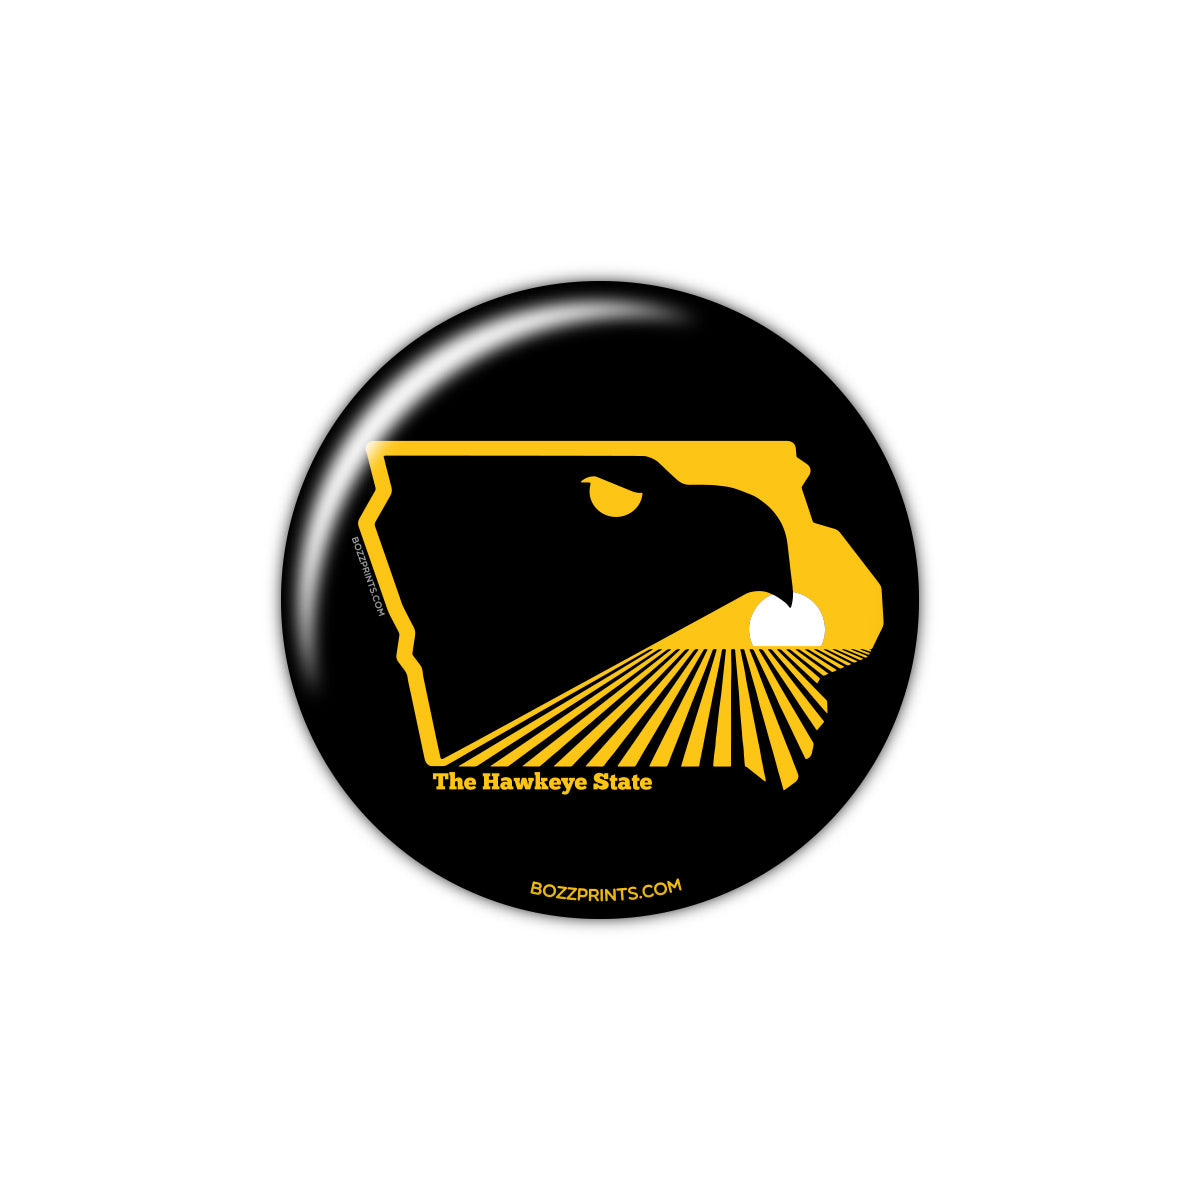 The Hawkeye State Button